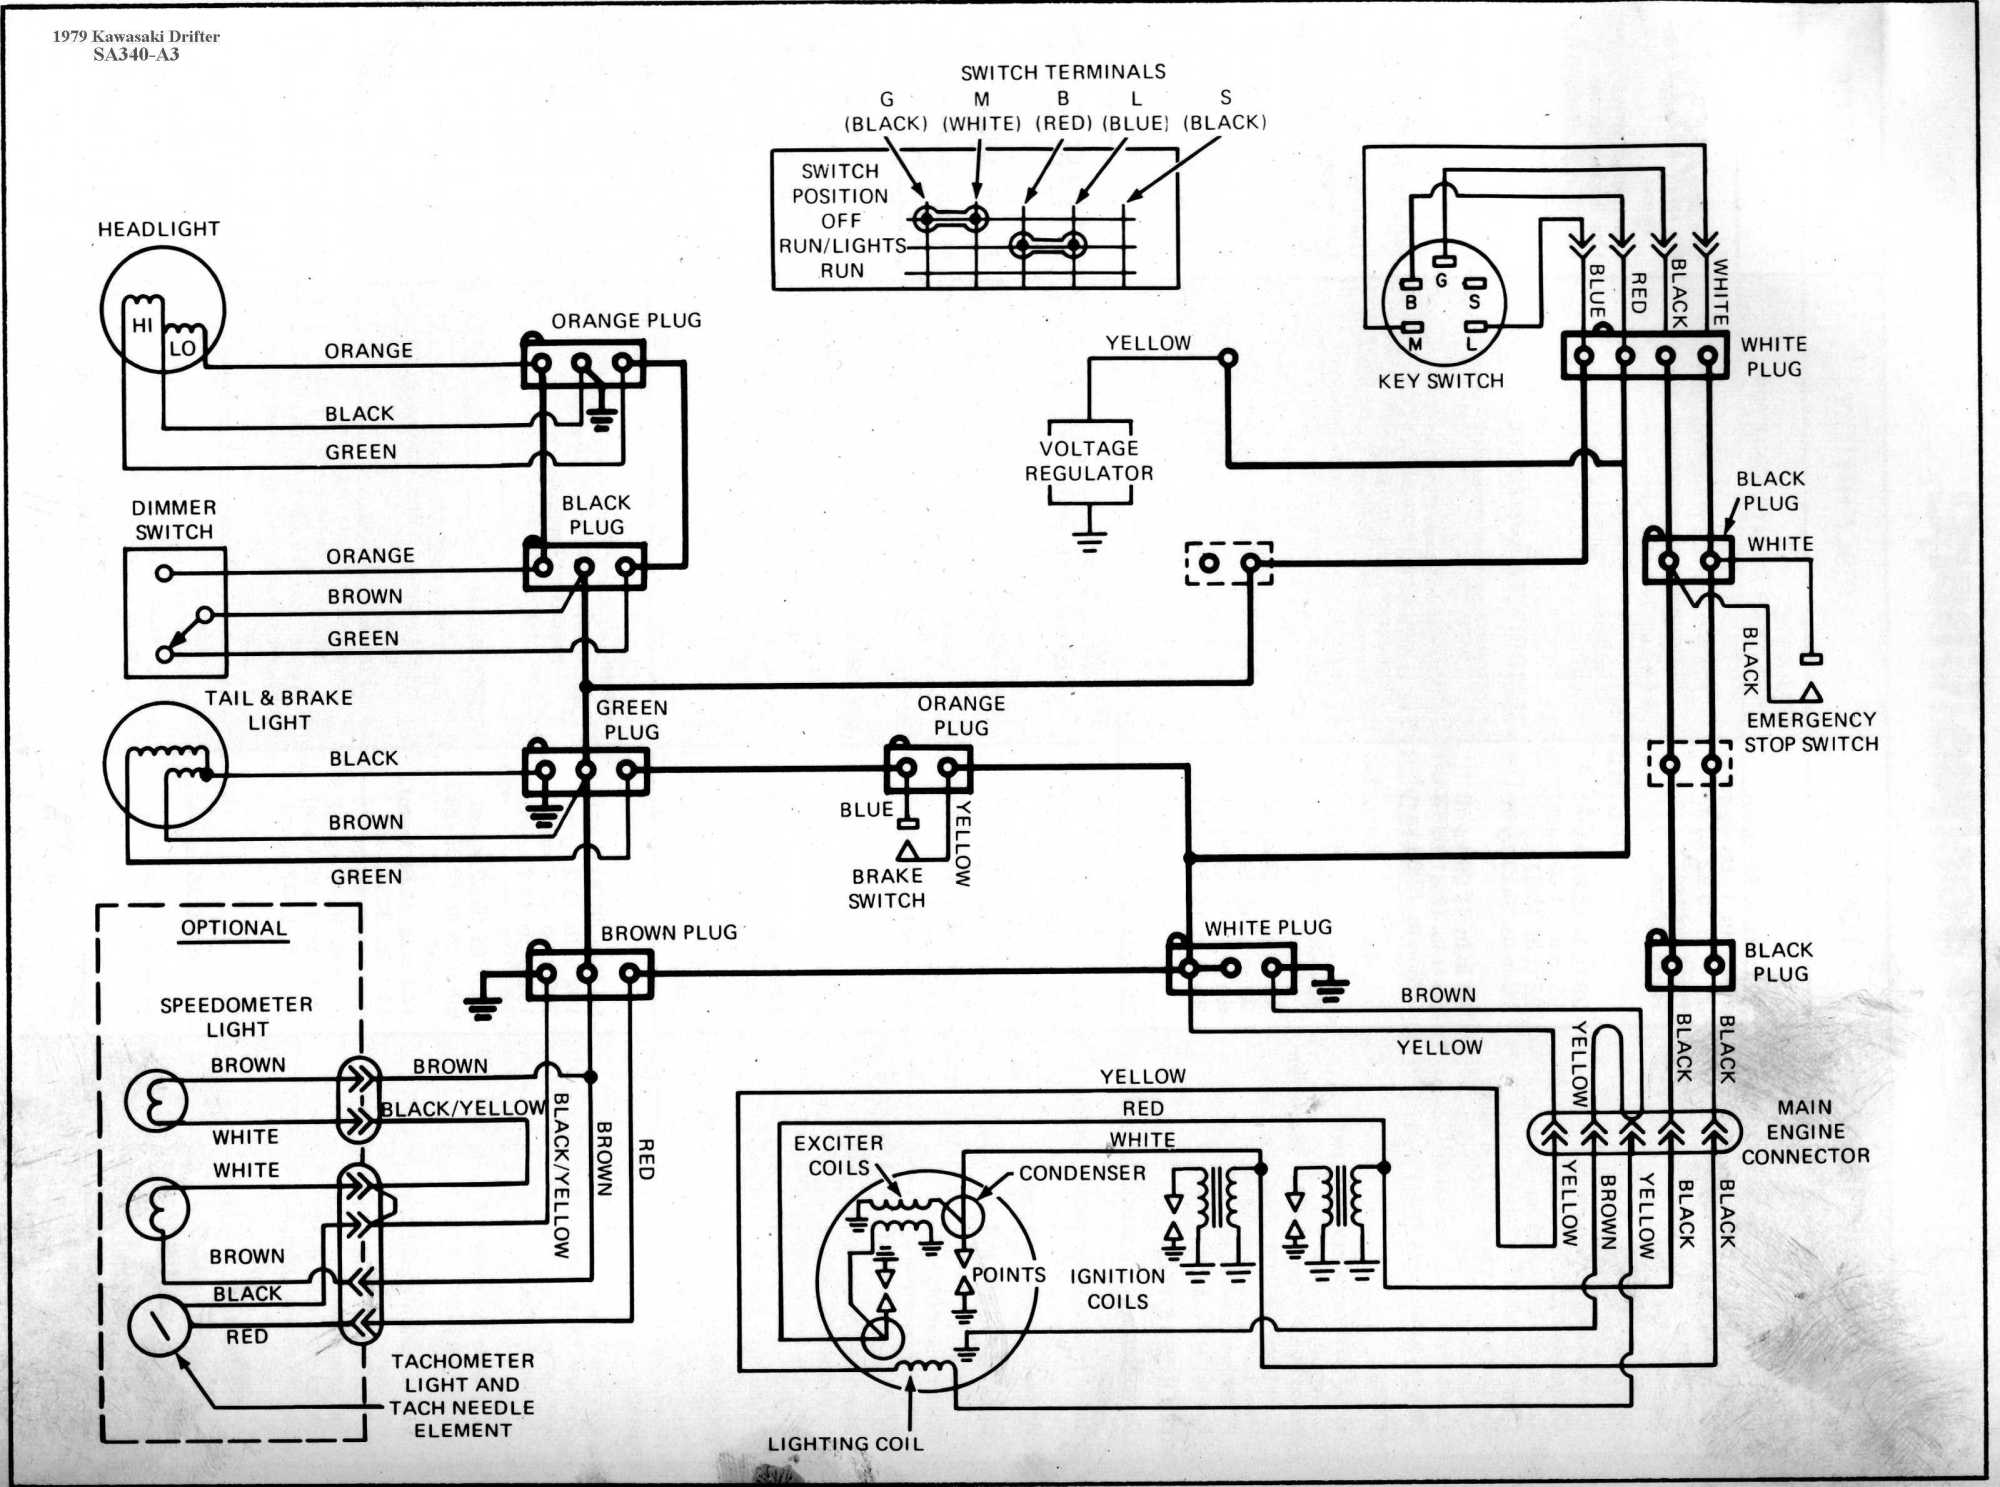 hight resolution of kawasaki drifter wiring diagrams1979 drifter 340 sa340 a3